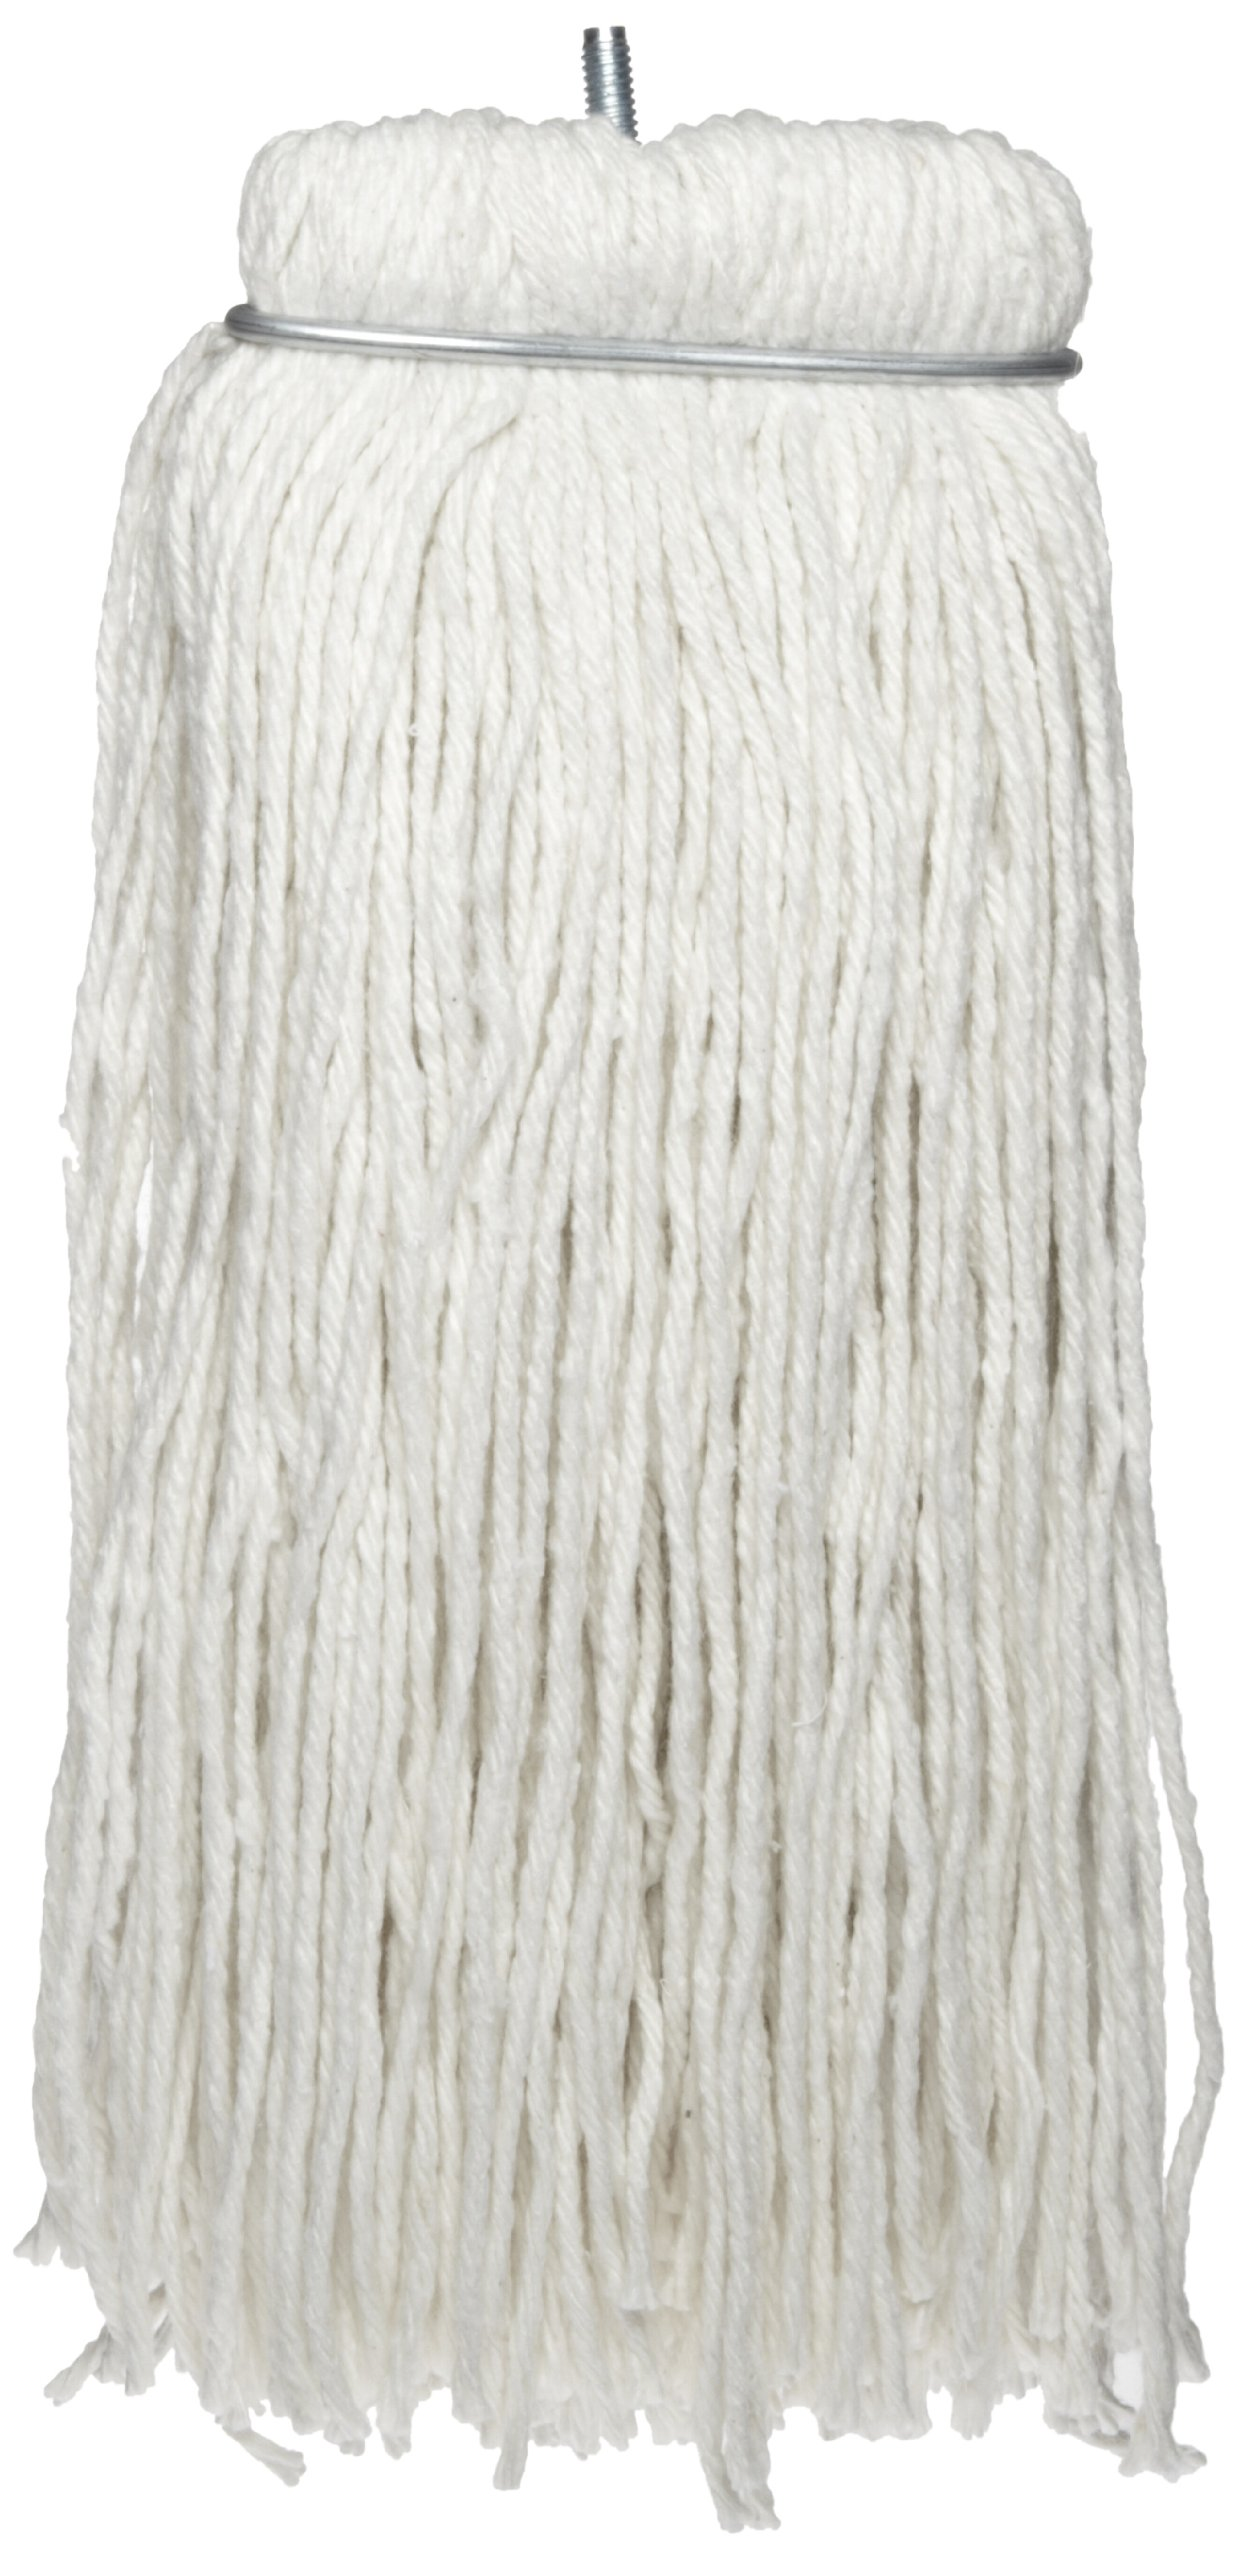 Impact 61112 Layflat Screw-Type Regular Cut-End Rayon Wet Mop Head, 12 oz, White (Case of 12) by Impact Products